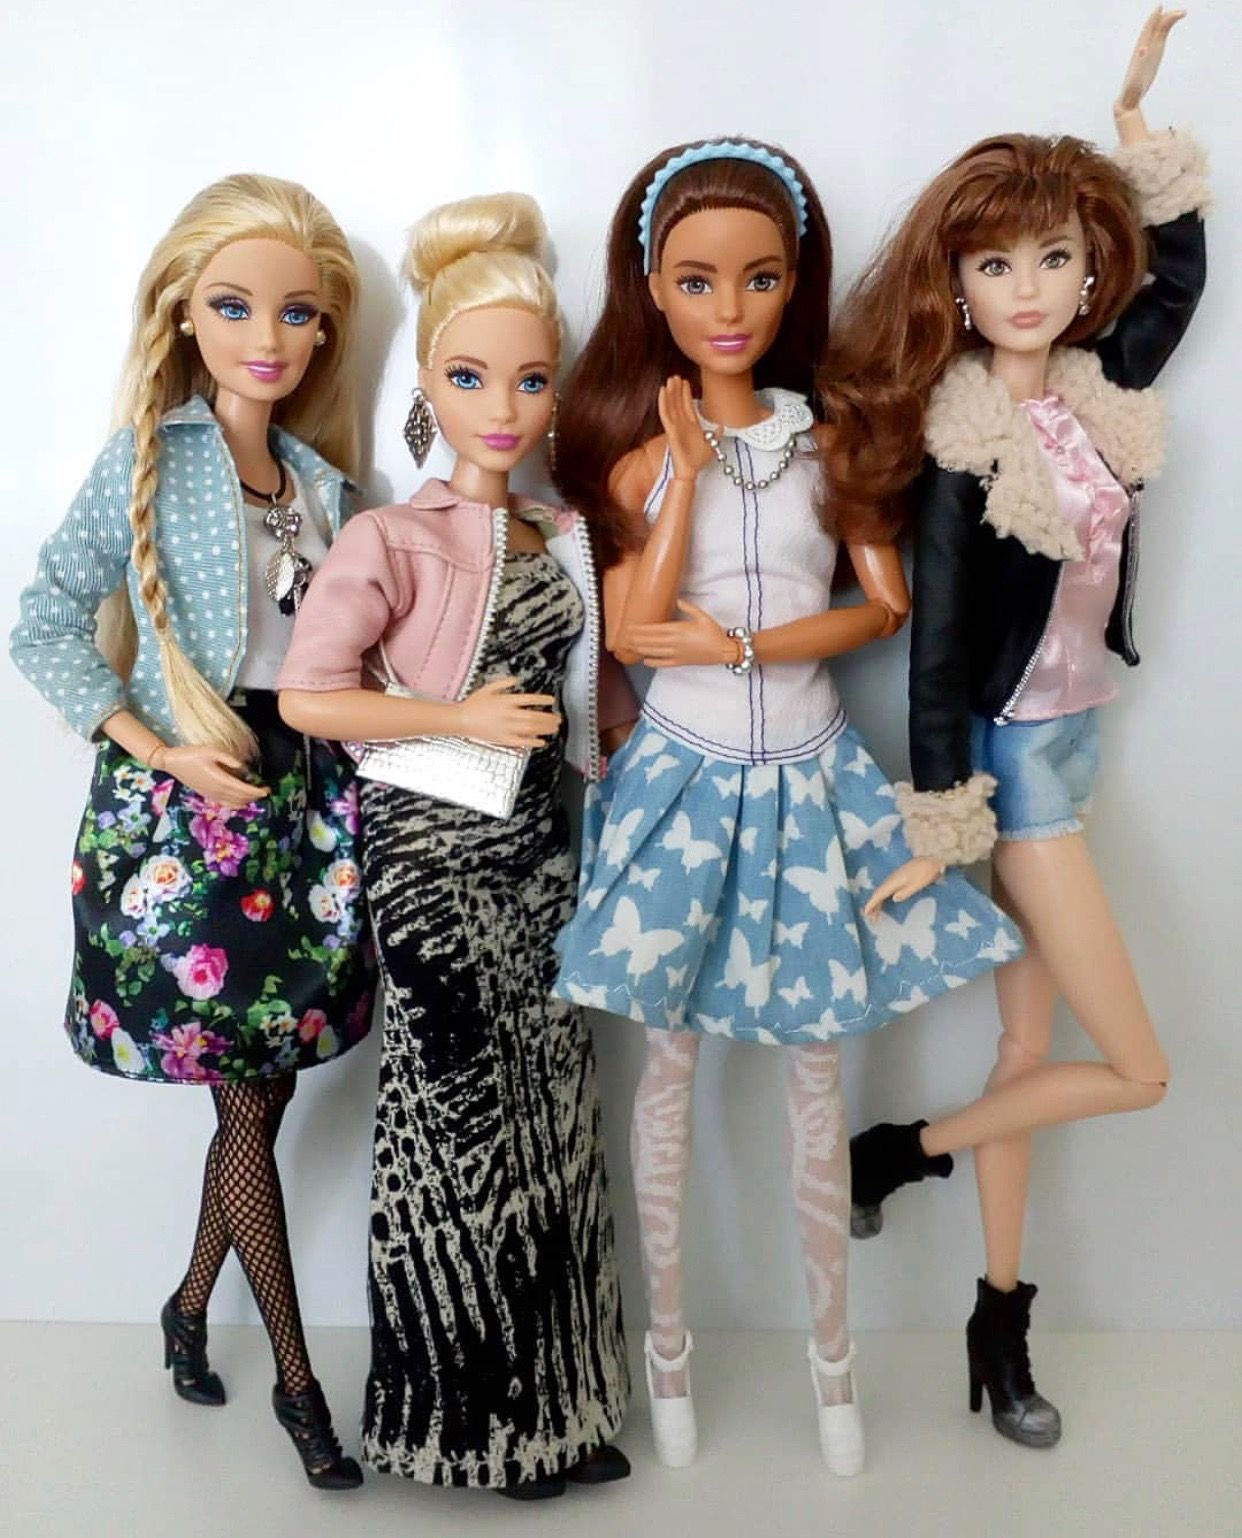 Girlfriends With Images Diy Barbie Clothes Barbie Model